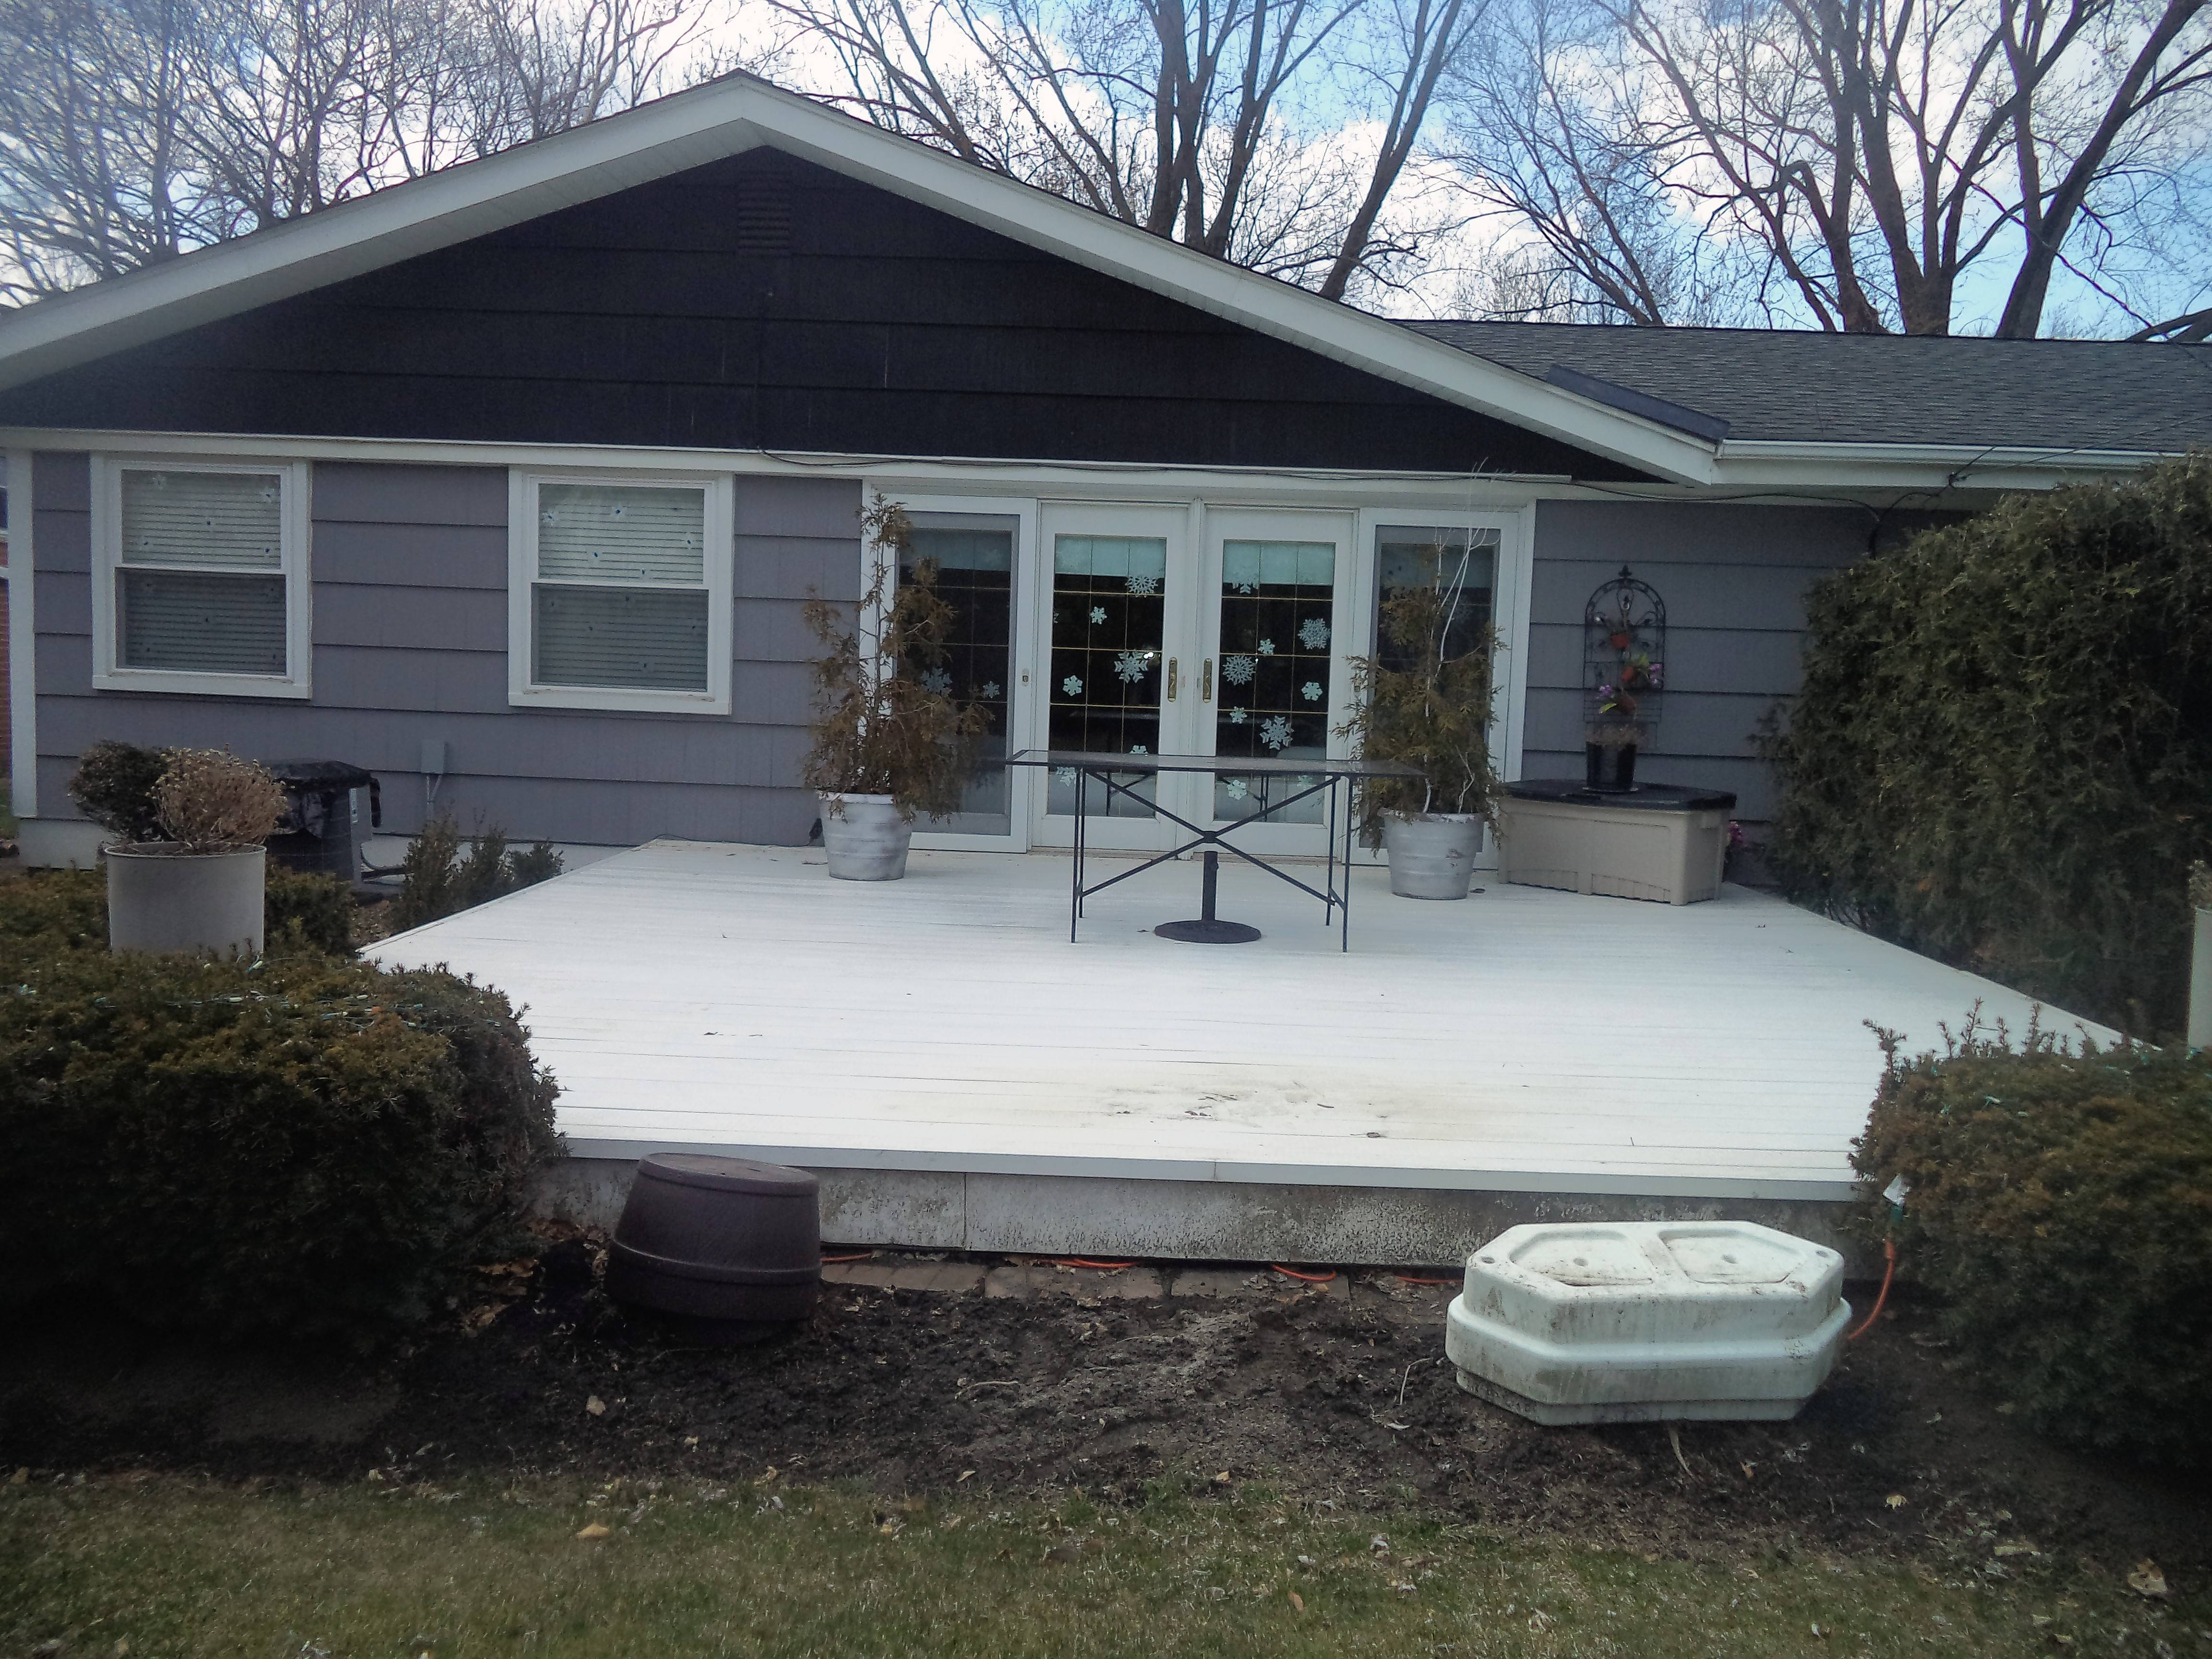 Laura Siracusa of Arlington Heights has a big, square vinyl deck that she calls her helipad.